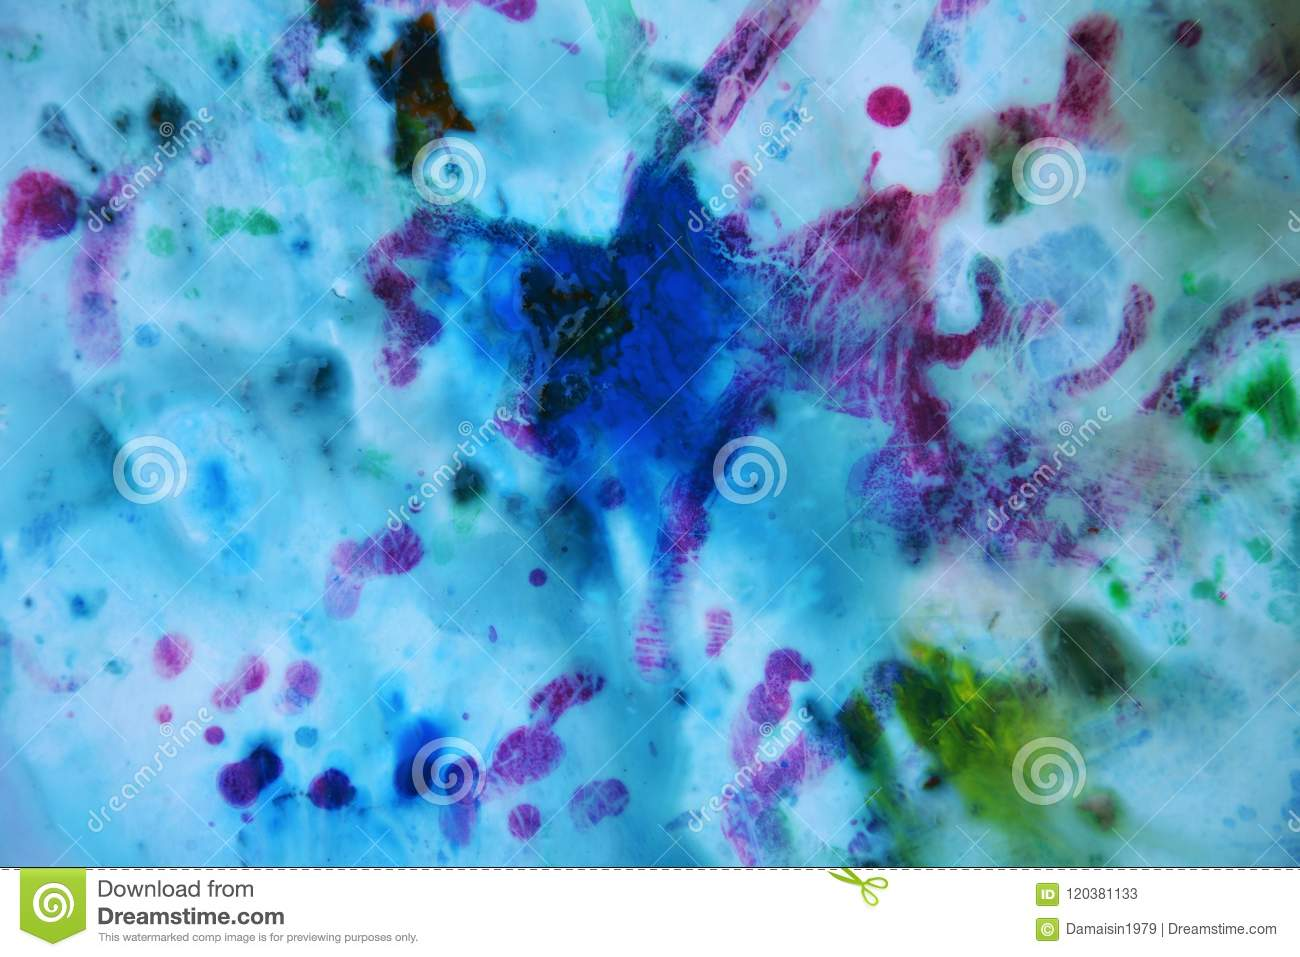 bb87ee55cae27 Abstract Mixed Purple Blue Colors And Hues Abstract Unique Wet